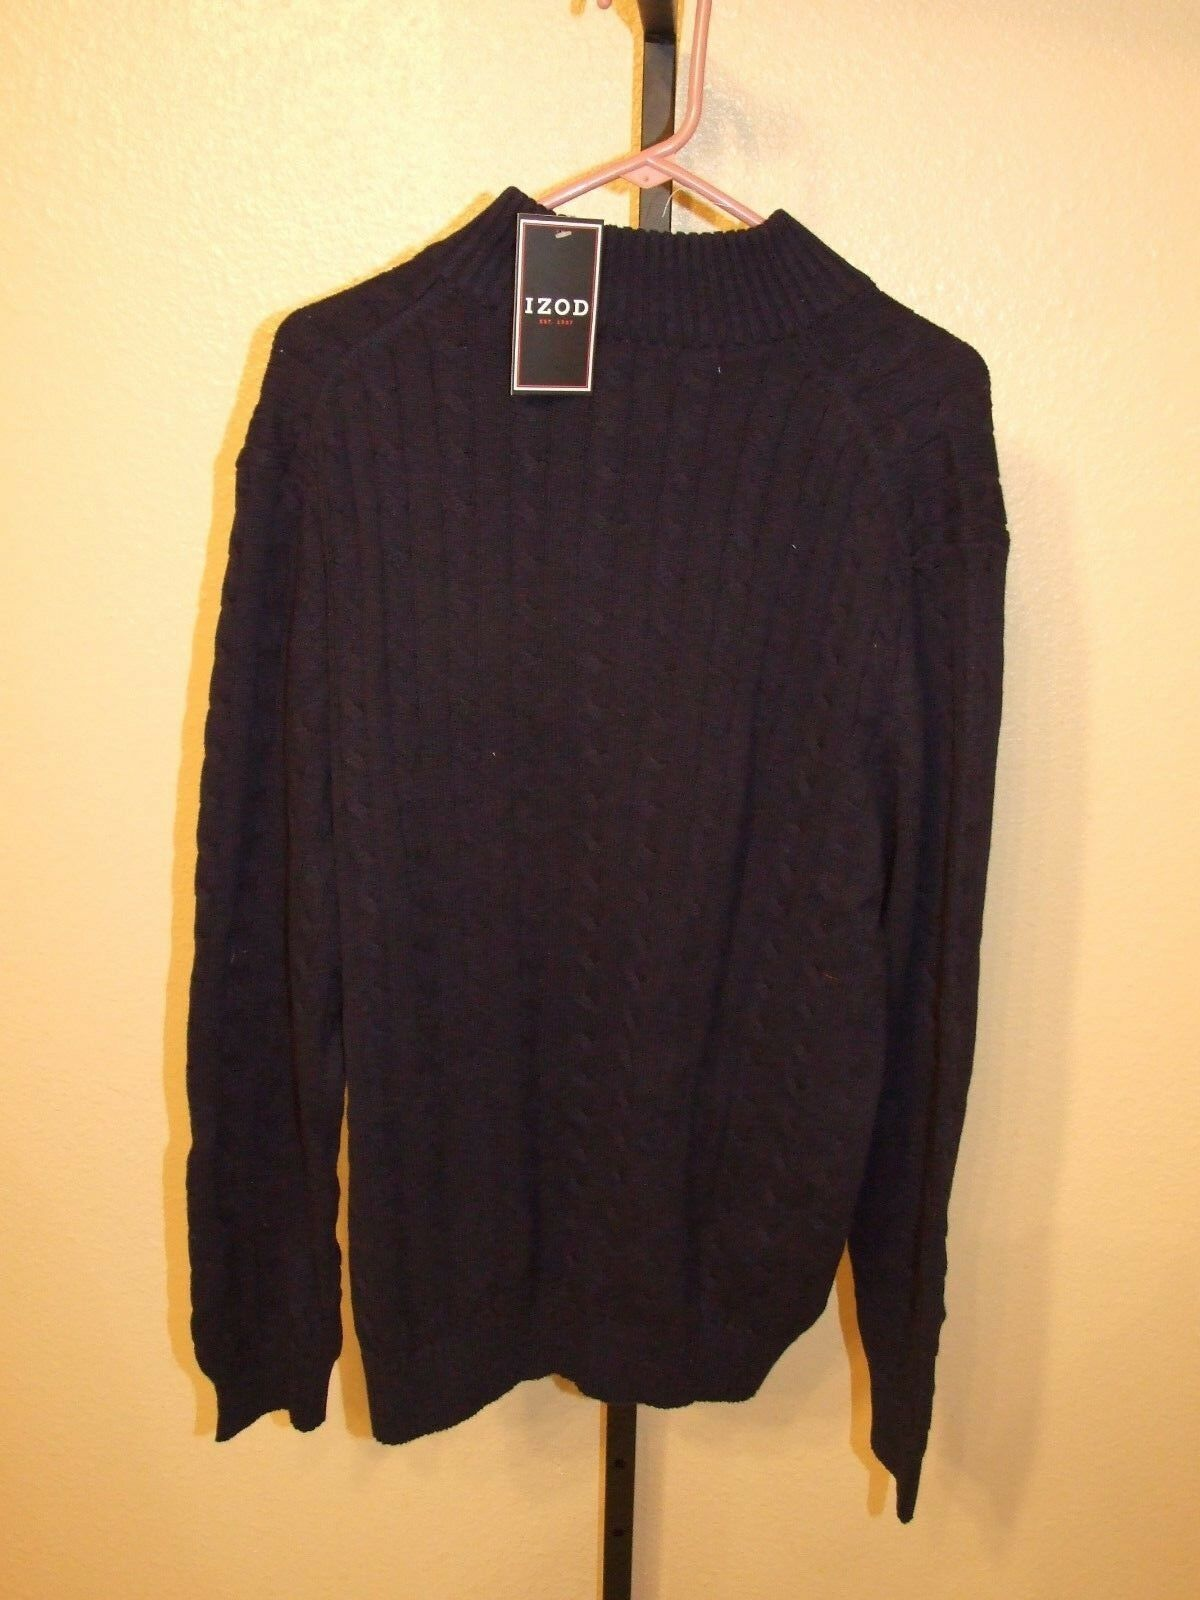 IZOD Mens 1/4 Zip Turtle Neck Sweater Midnight Blue Size M | eBay